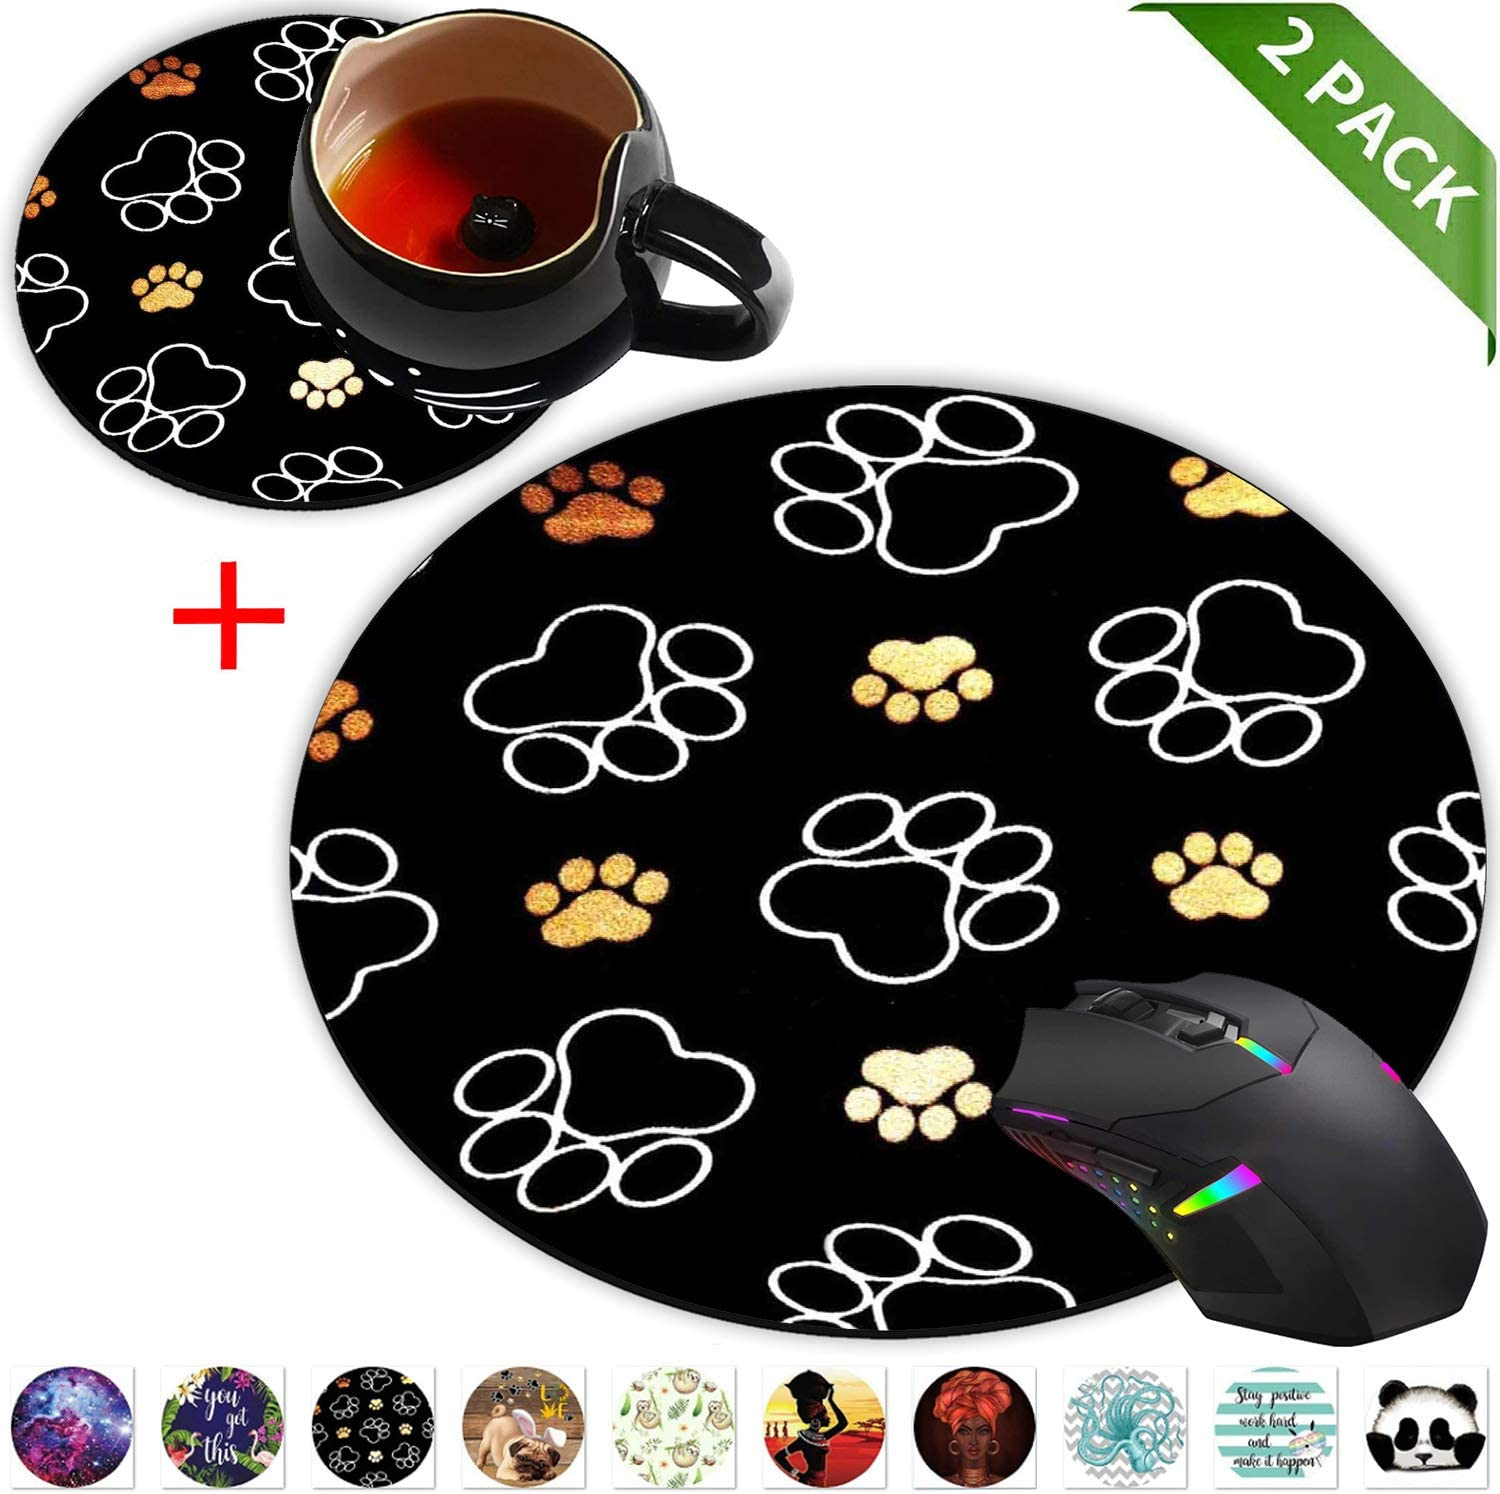 Round Mouse Pad and Coasters Set, Cute Dog Paw Prints Gold White Mousepad, Anti Slip Rubber Round Mousepads Desktop Notebook Mouse Mat for Working and Gaming